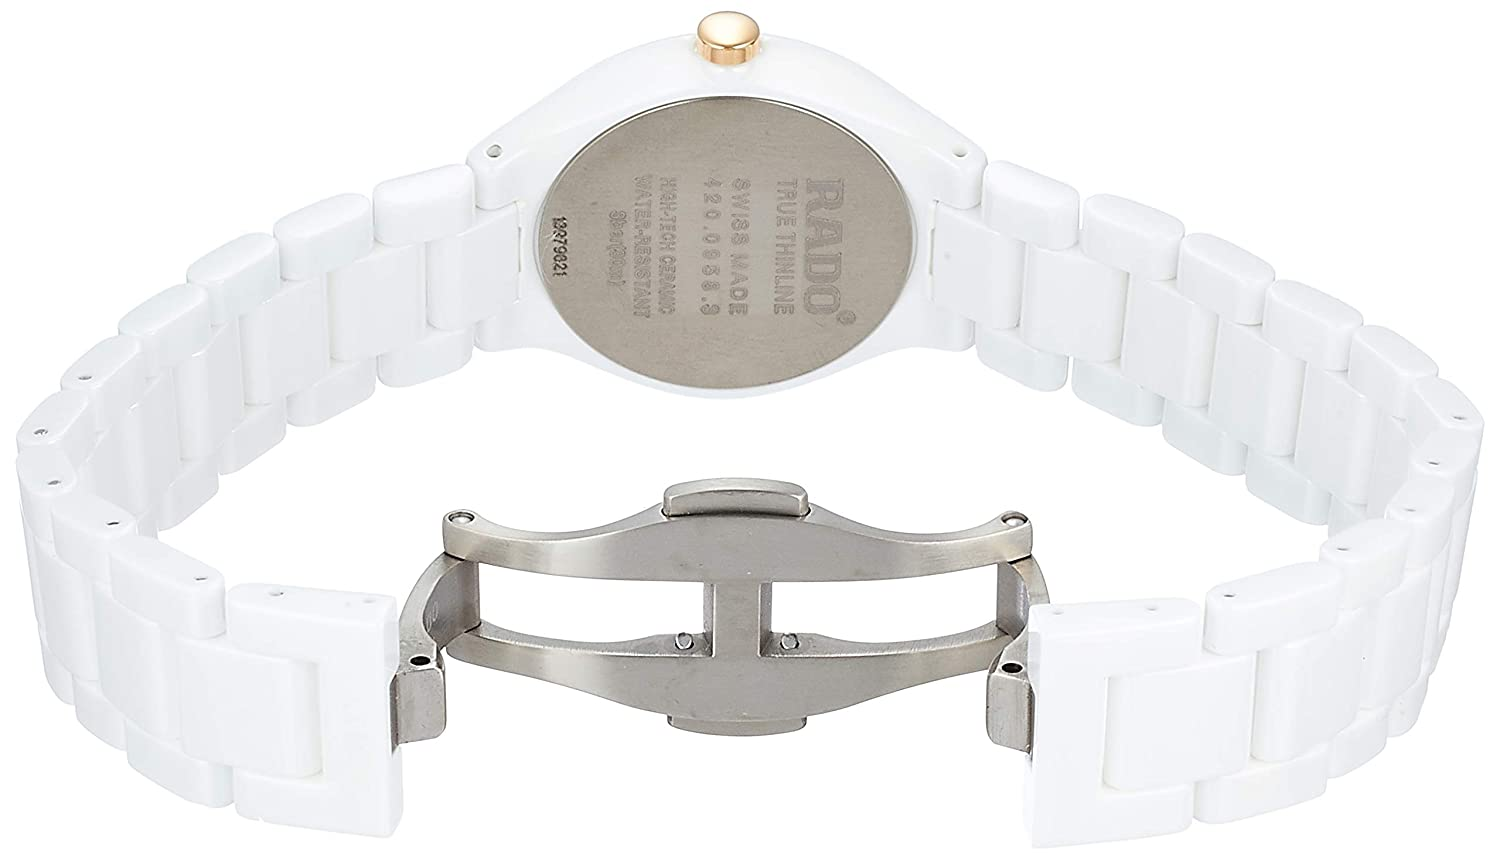 becb1bb3a91 Amazon.com  Rado Rado True Thinline Women s Automatic Watch R27958702  Rado   Watches